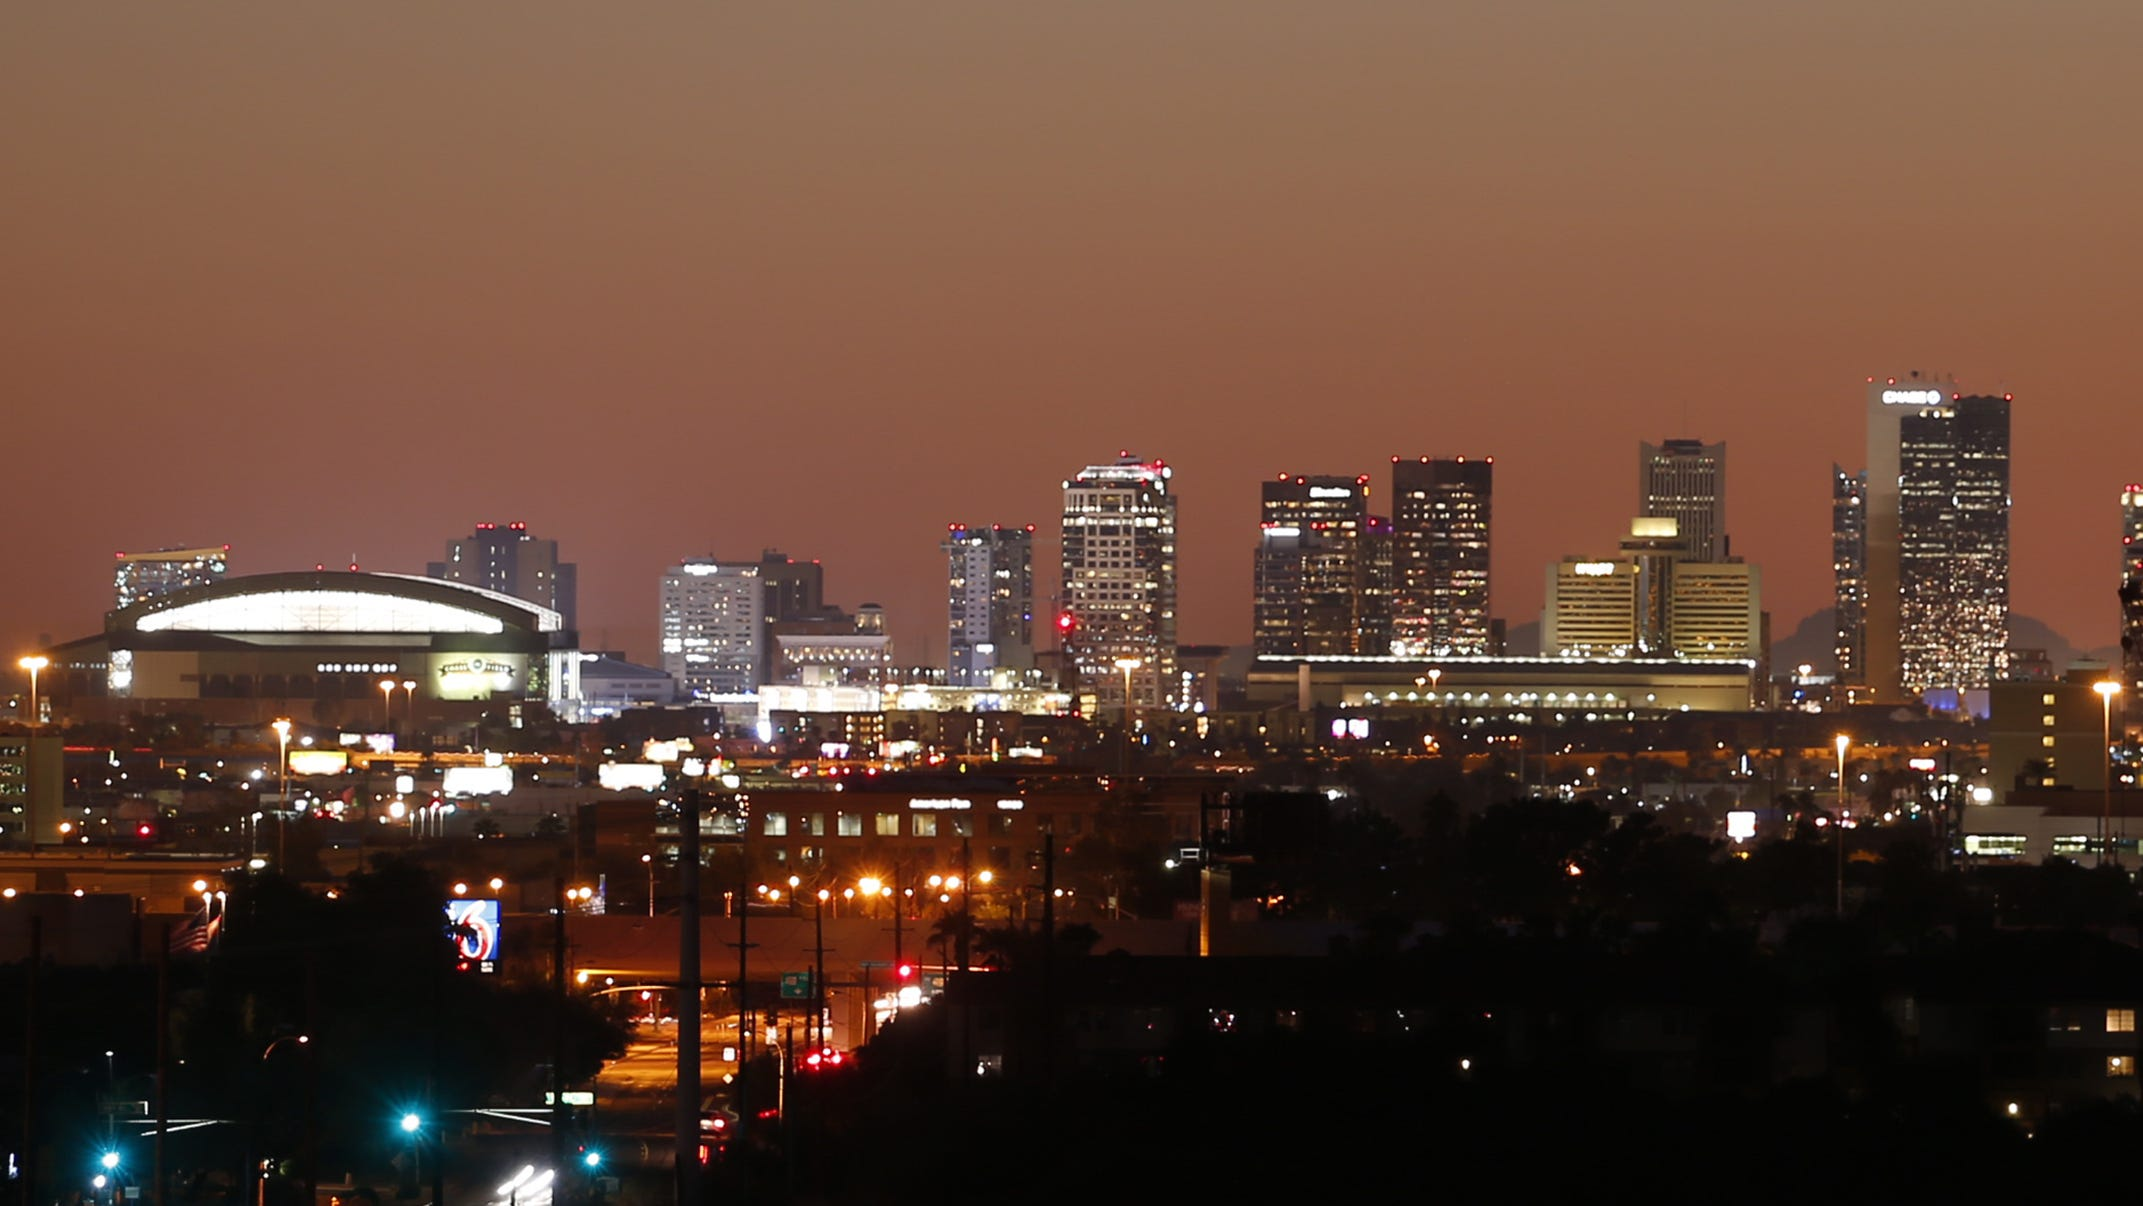 Could population growth propel Phoenix and Tucson to merge?